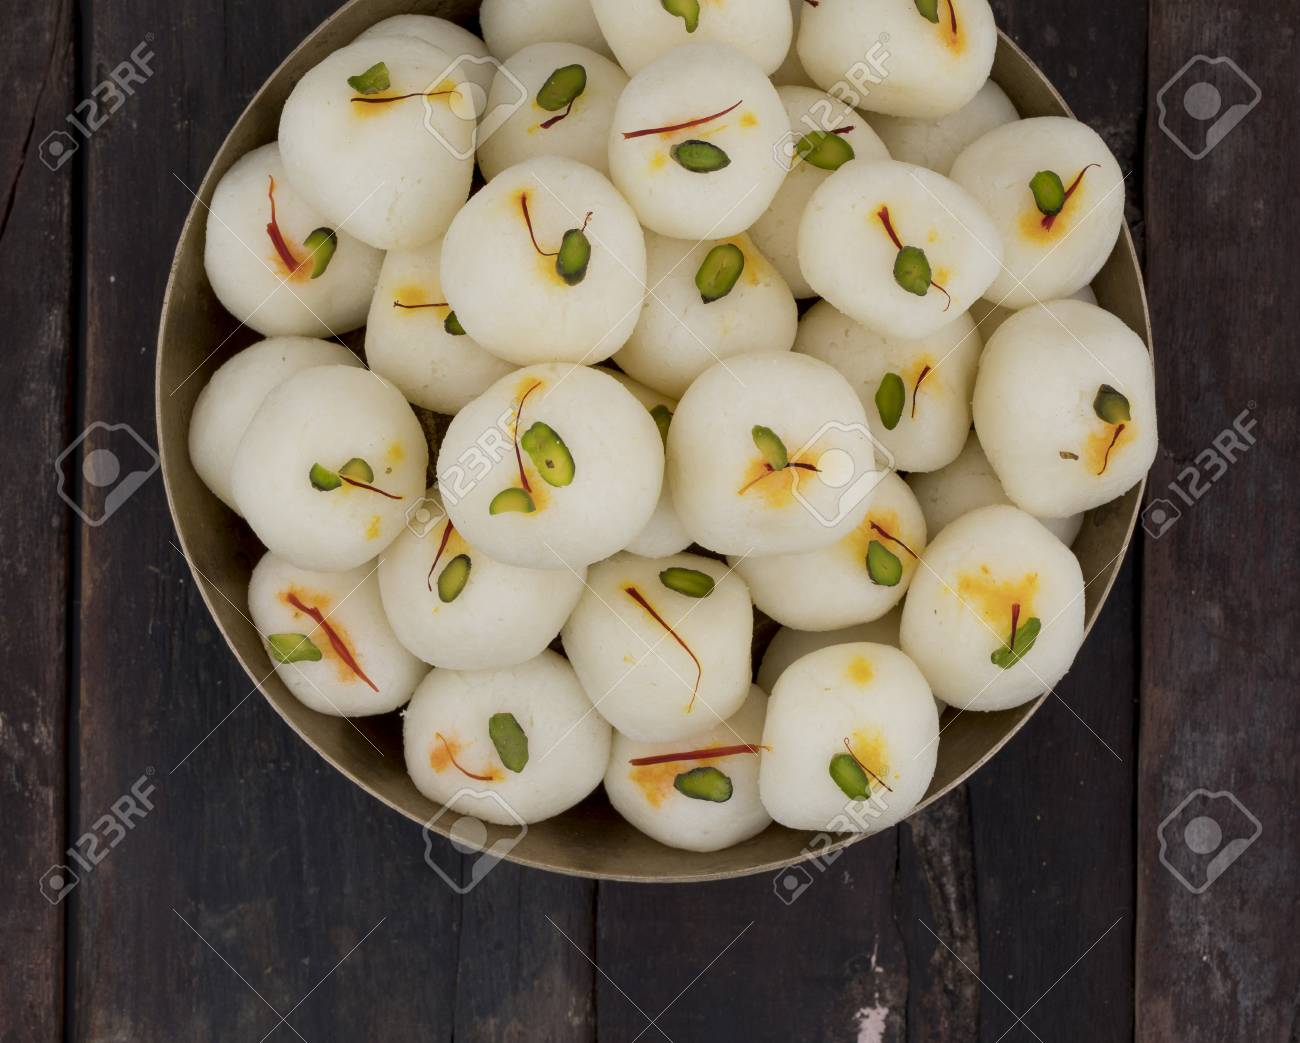 Image result for bengali rasgulla